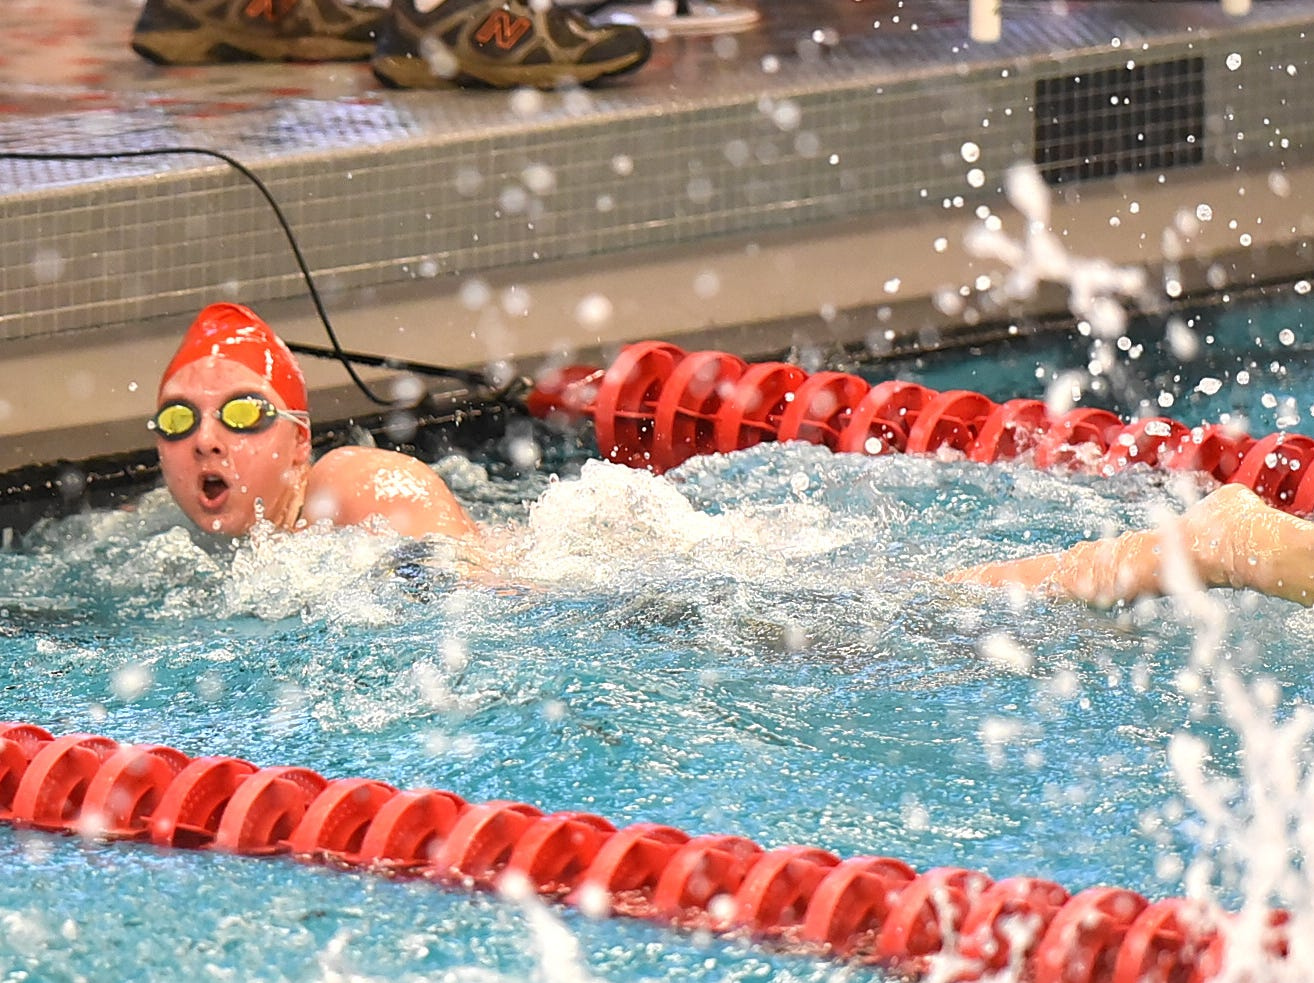 Page Striley of Lakota West brings it home in the final heat of the girls 50 freestyle at the Southwest Ohio Swimming and Diving Classic, January 19, 2019.